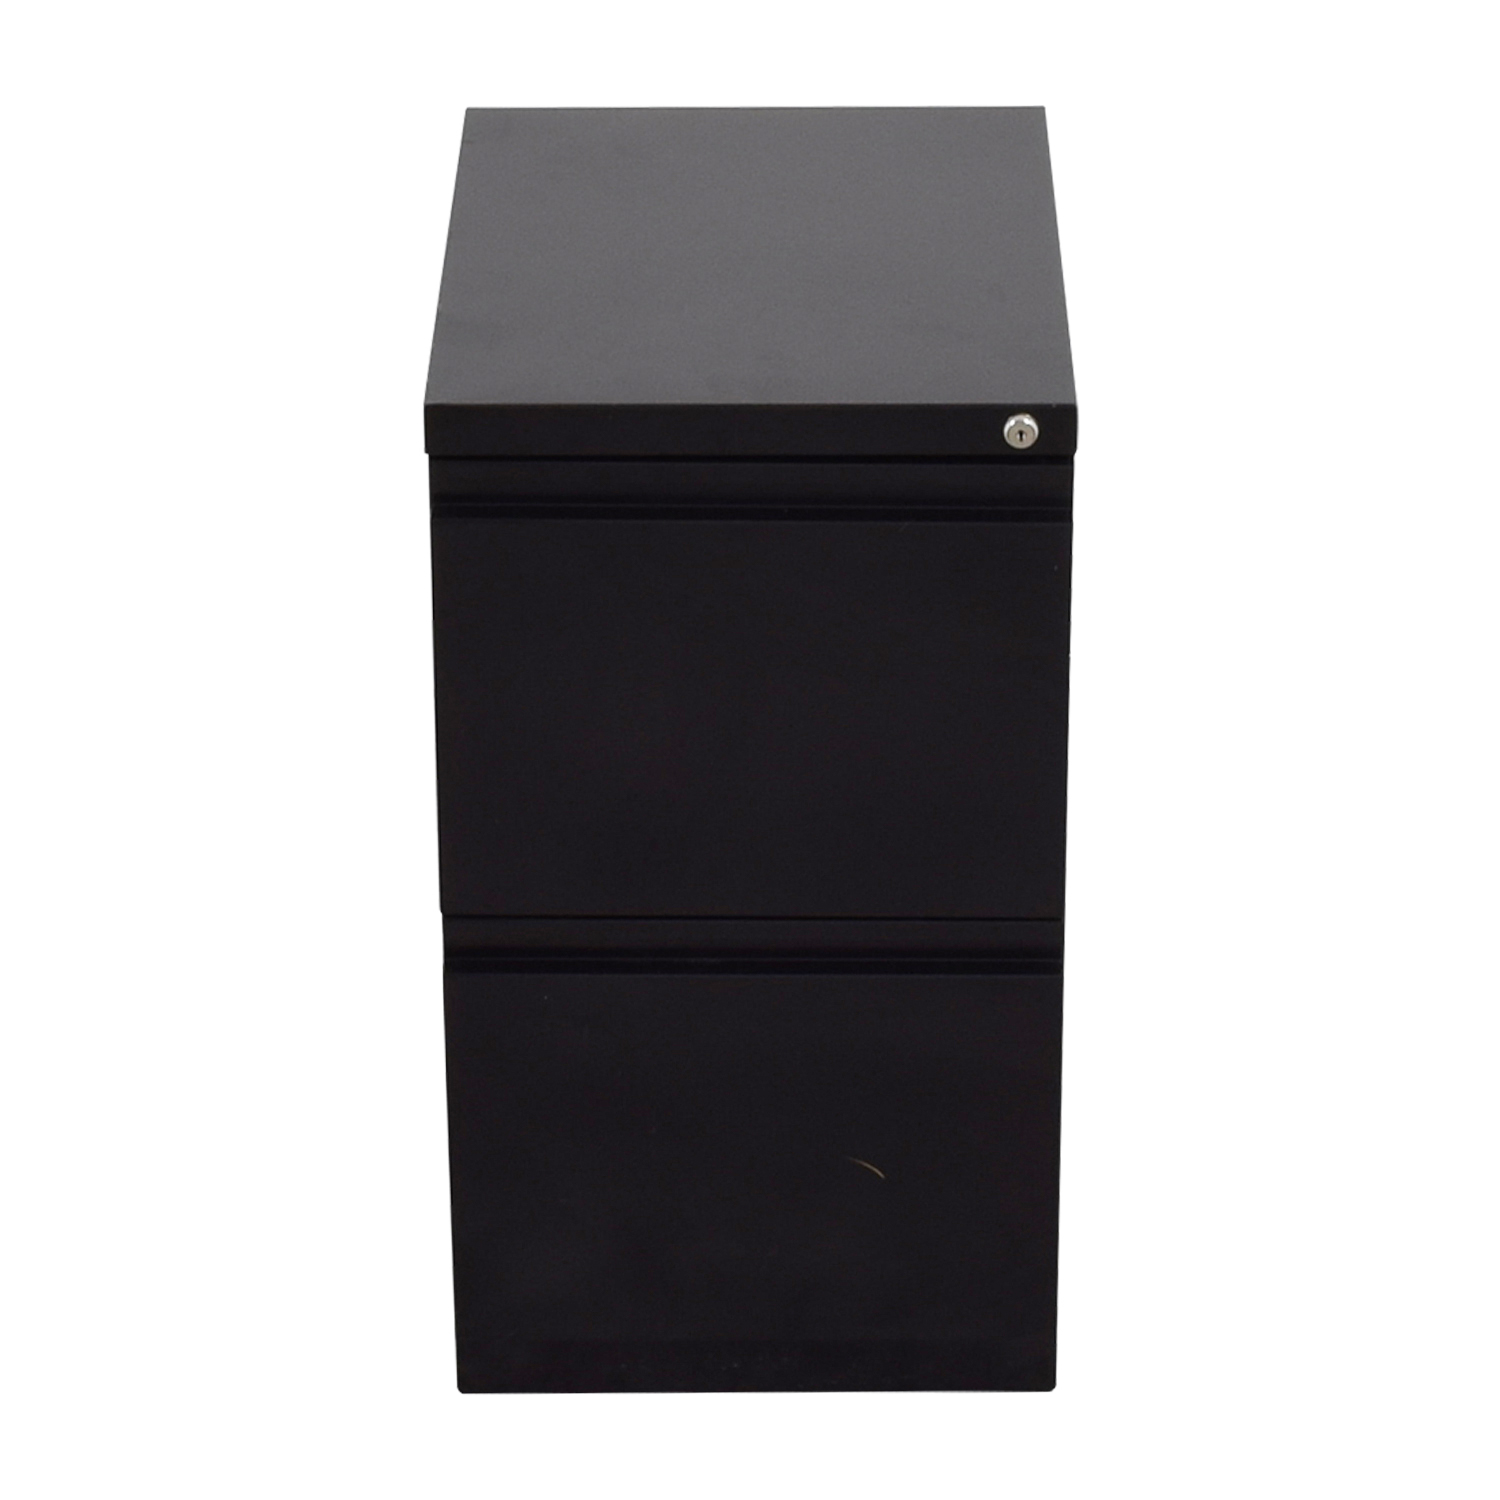 Staples Staples 2-Drawer Mobile Pedestal File Cabinet second hand